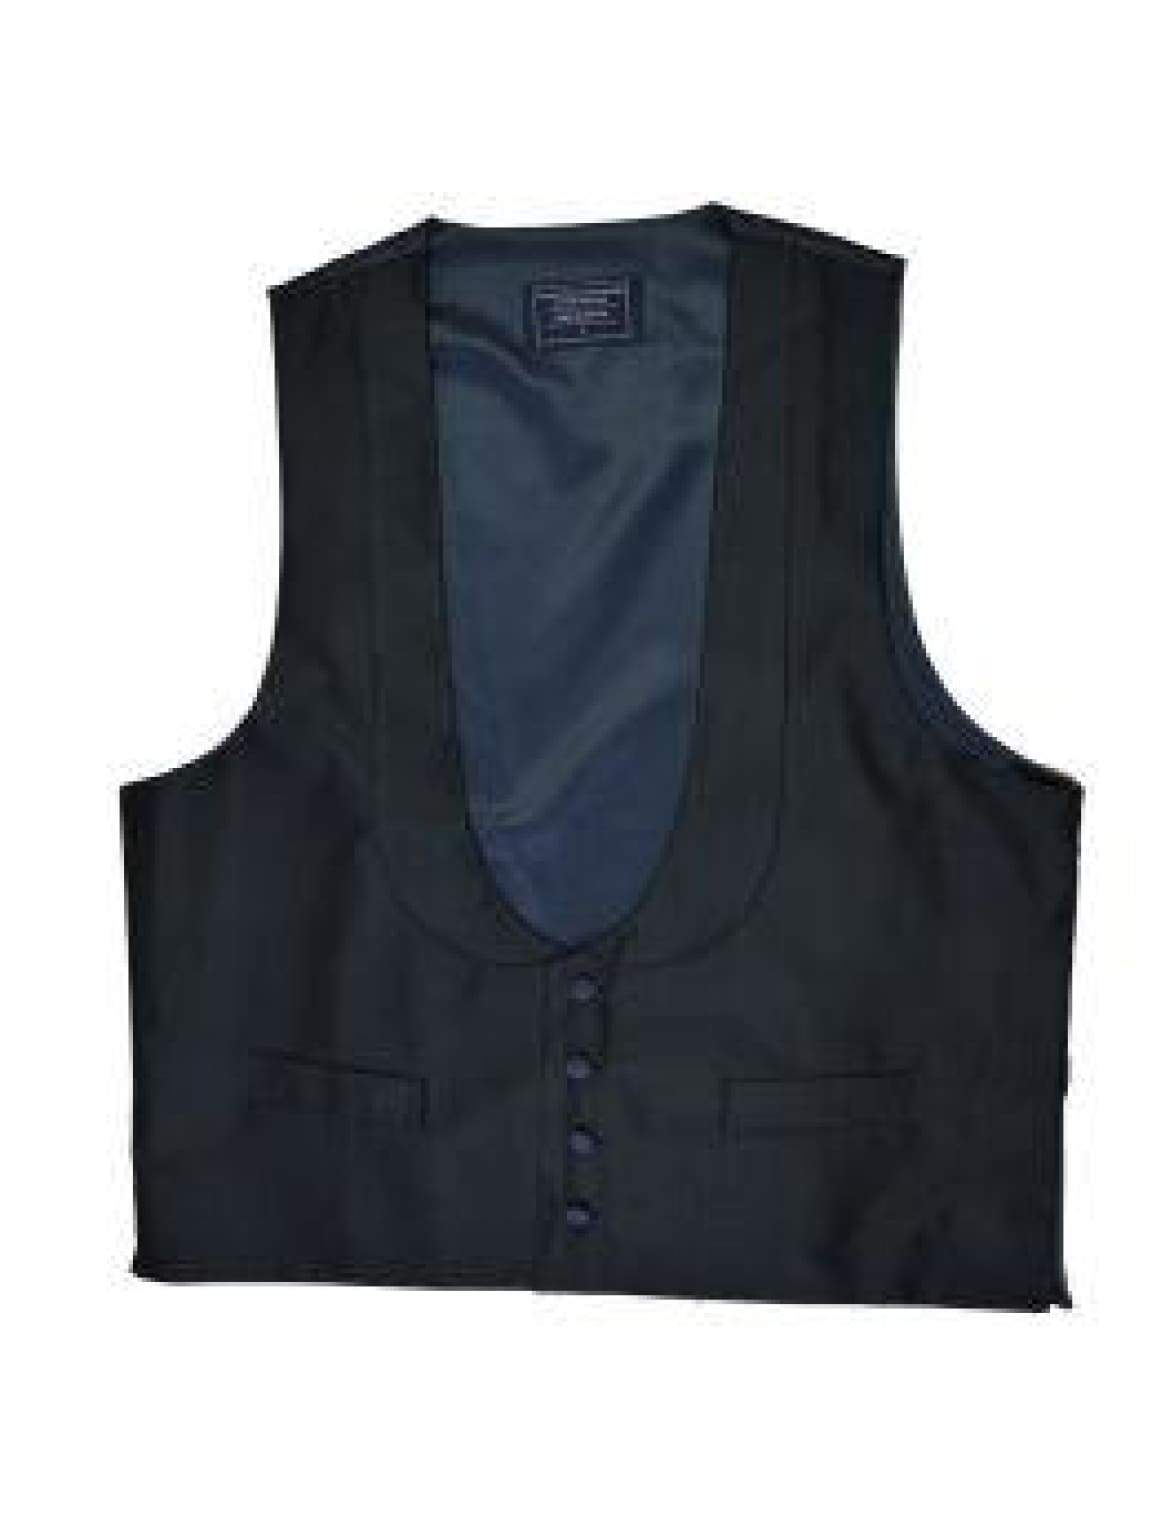 L A Smith Black Silk Scoop Neck Waistcoat - Suit & Tailoring